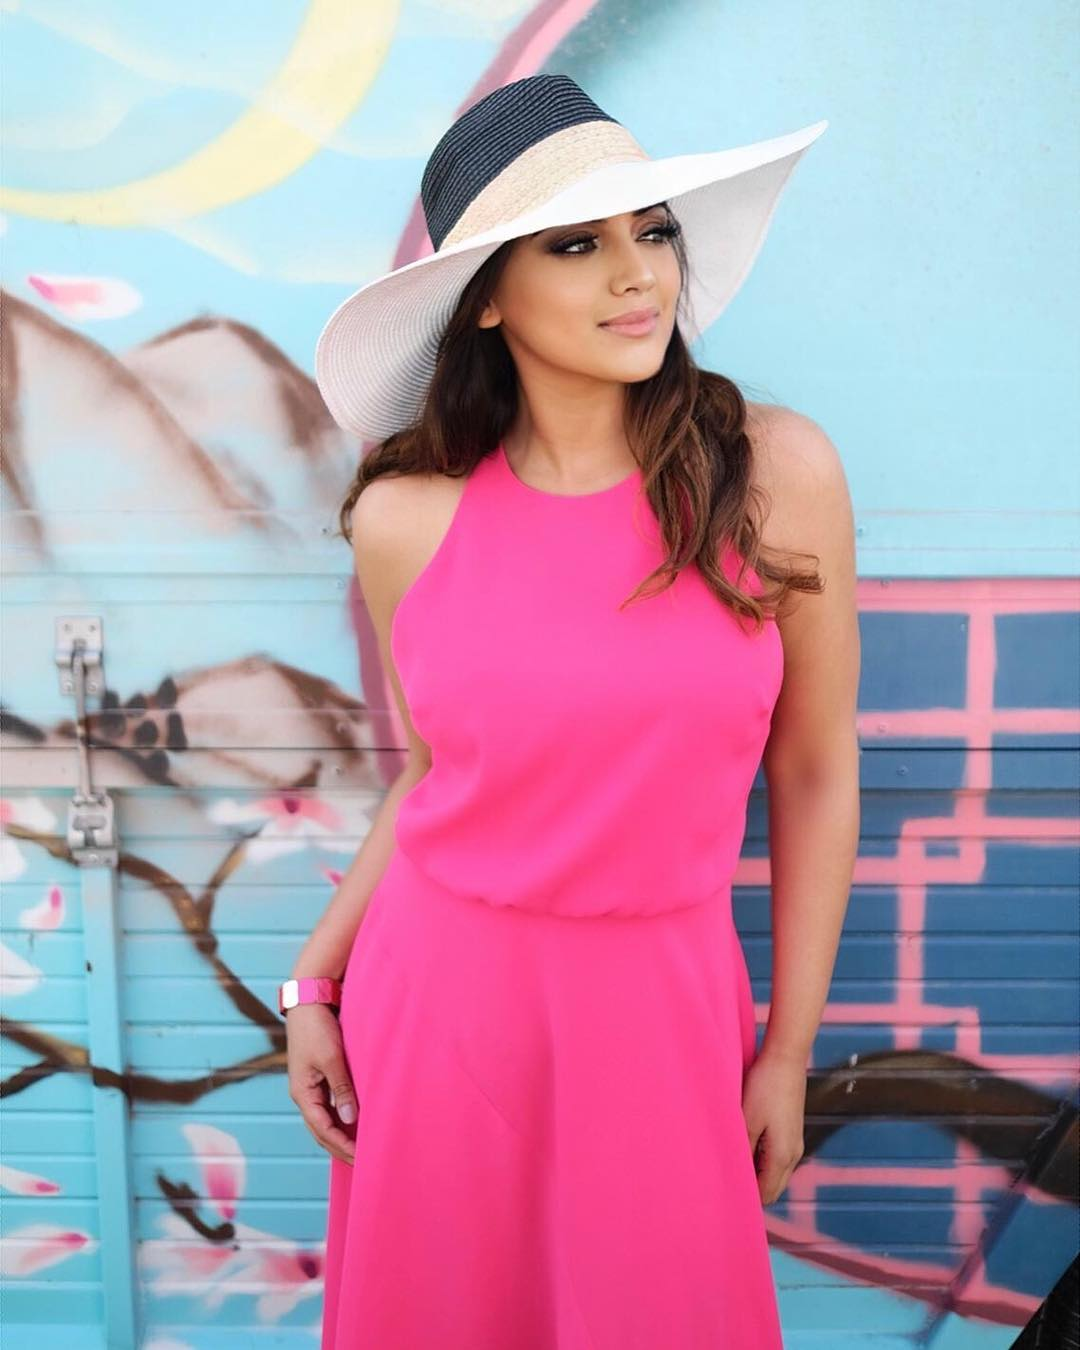 Sleeveless Dress In Fuchsia And Wide-Brim Beach Hat 2019